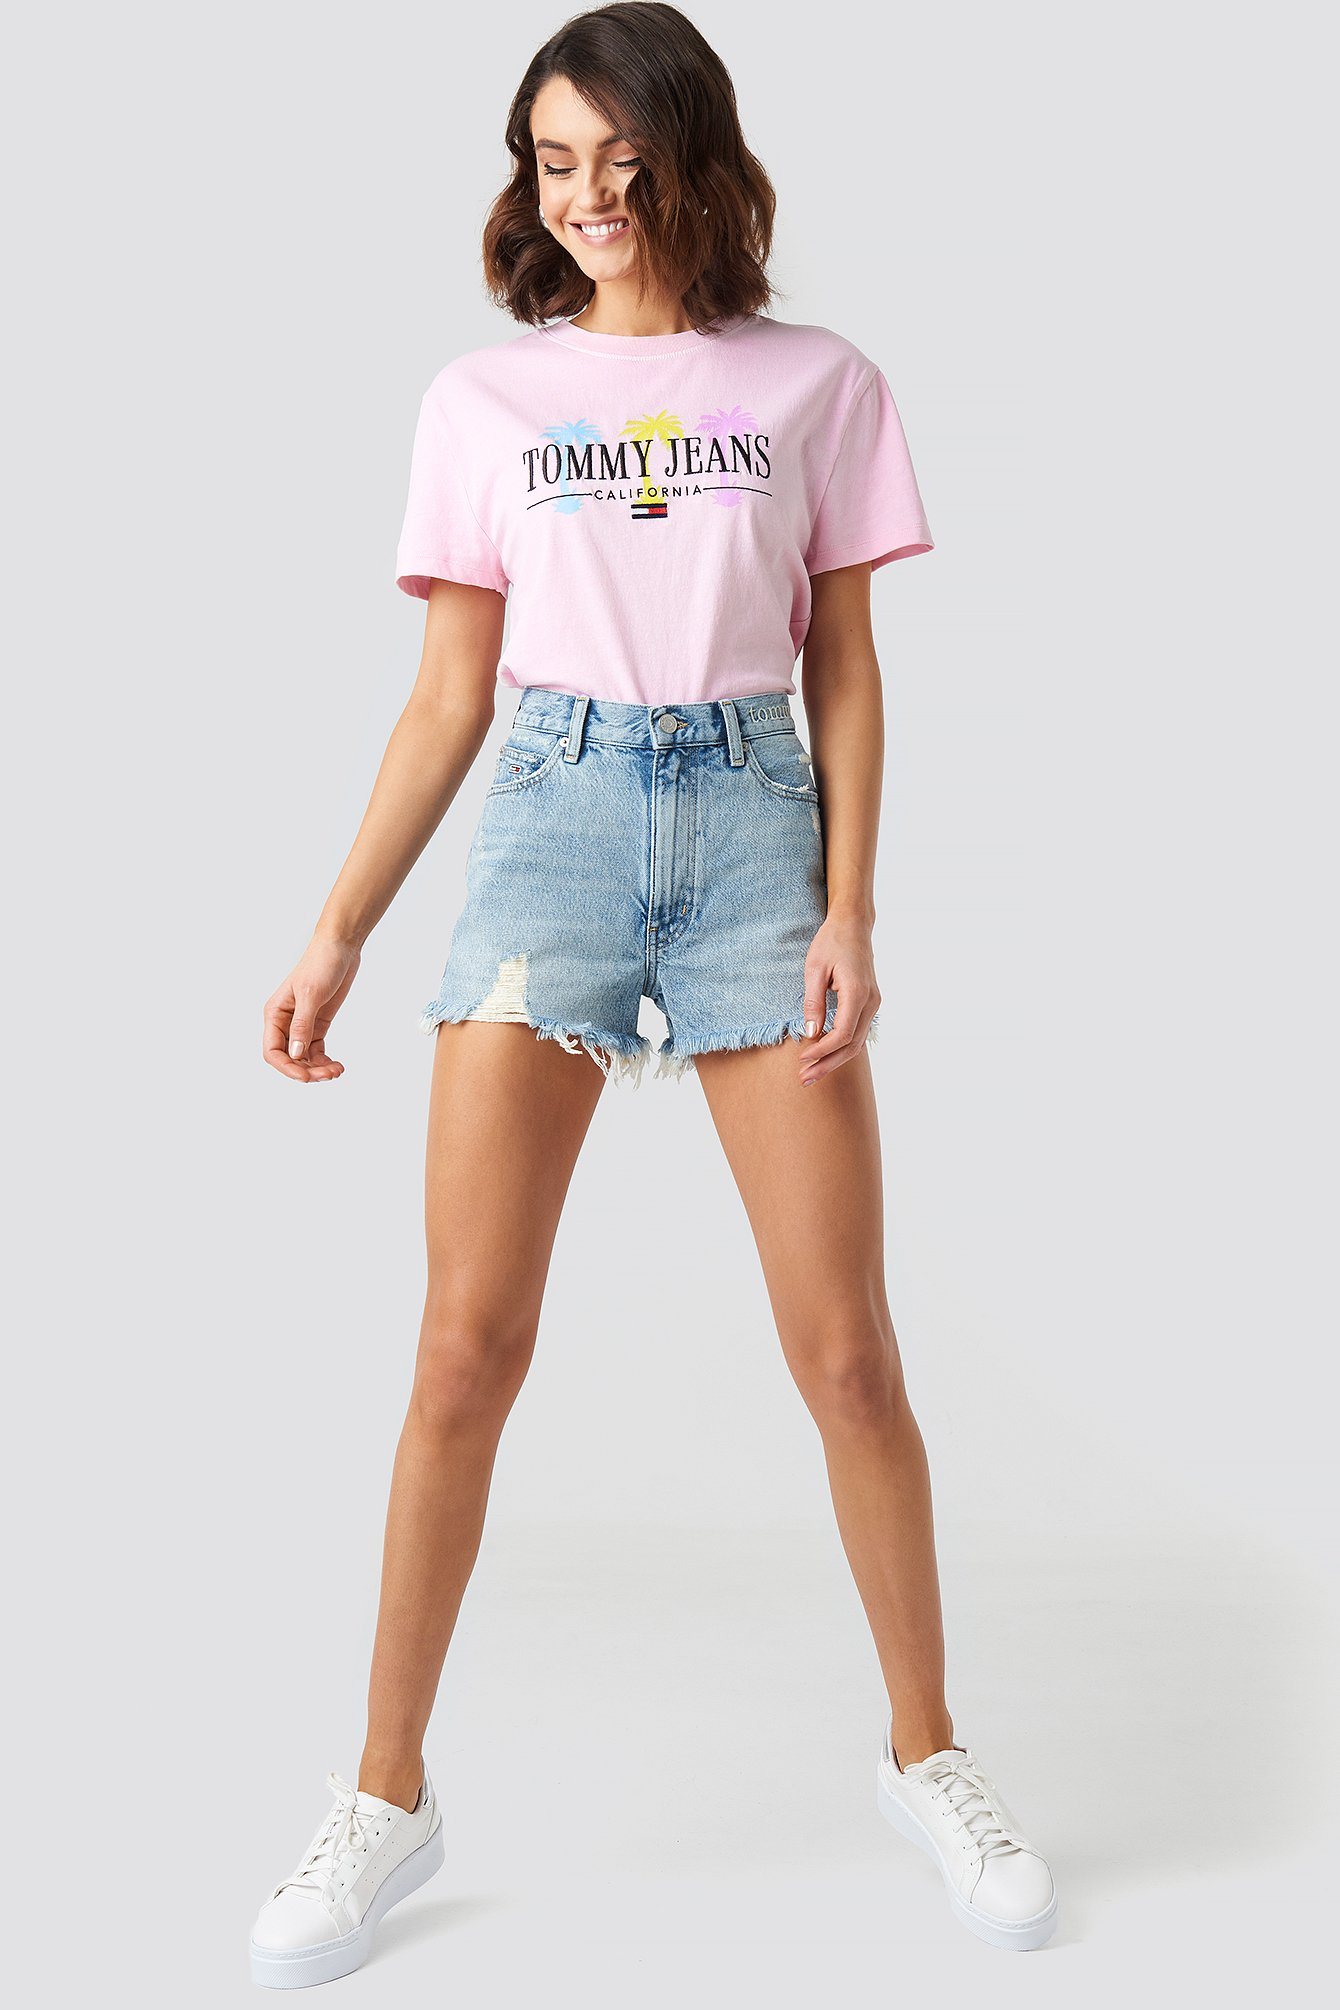 Tommy Jeans Hot Pant Short NA-KD.COM